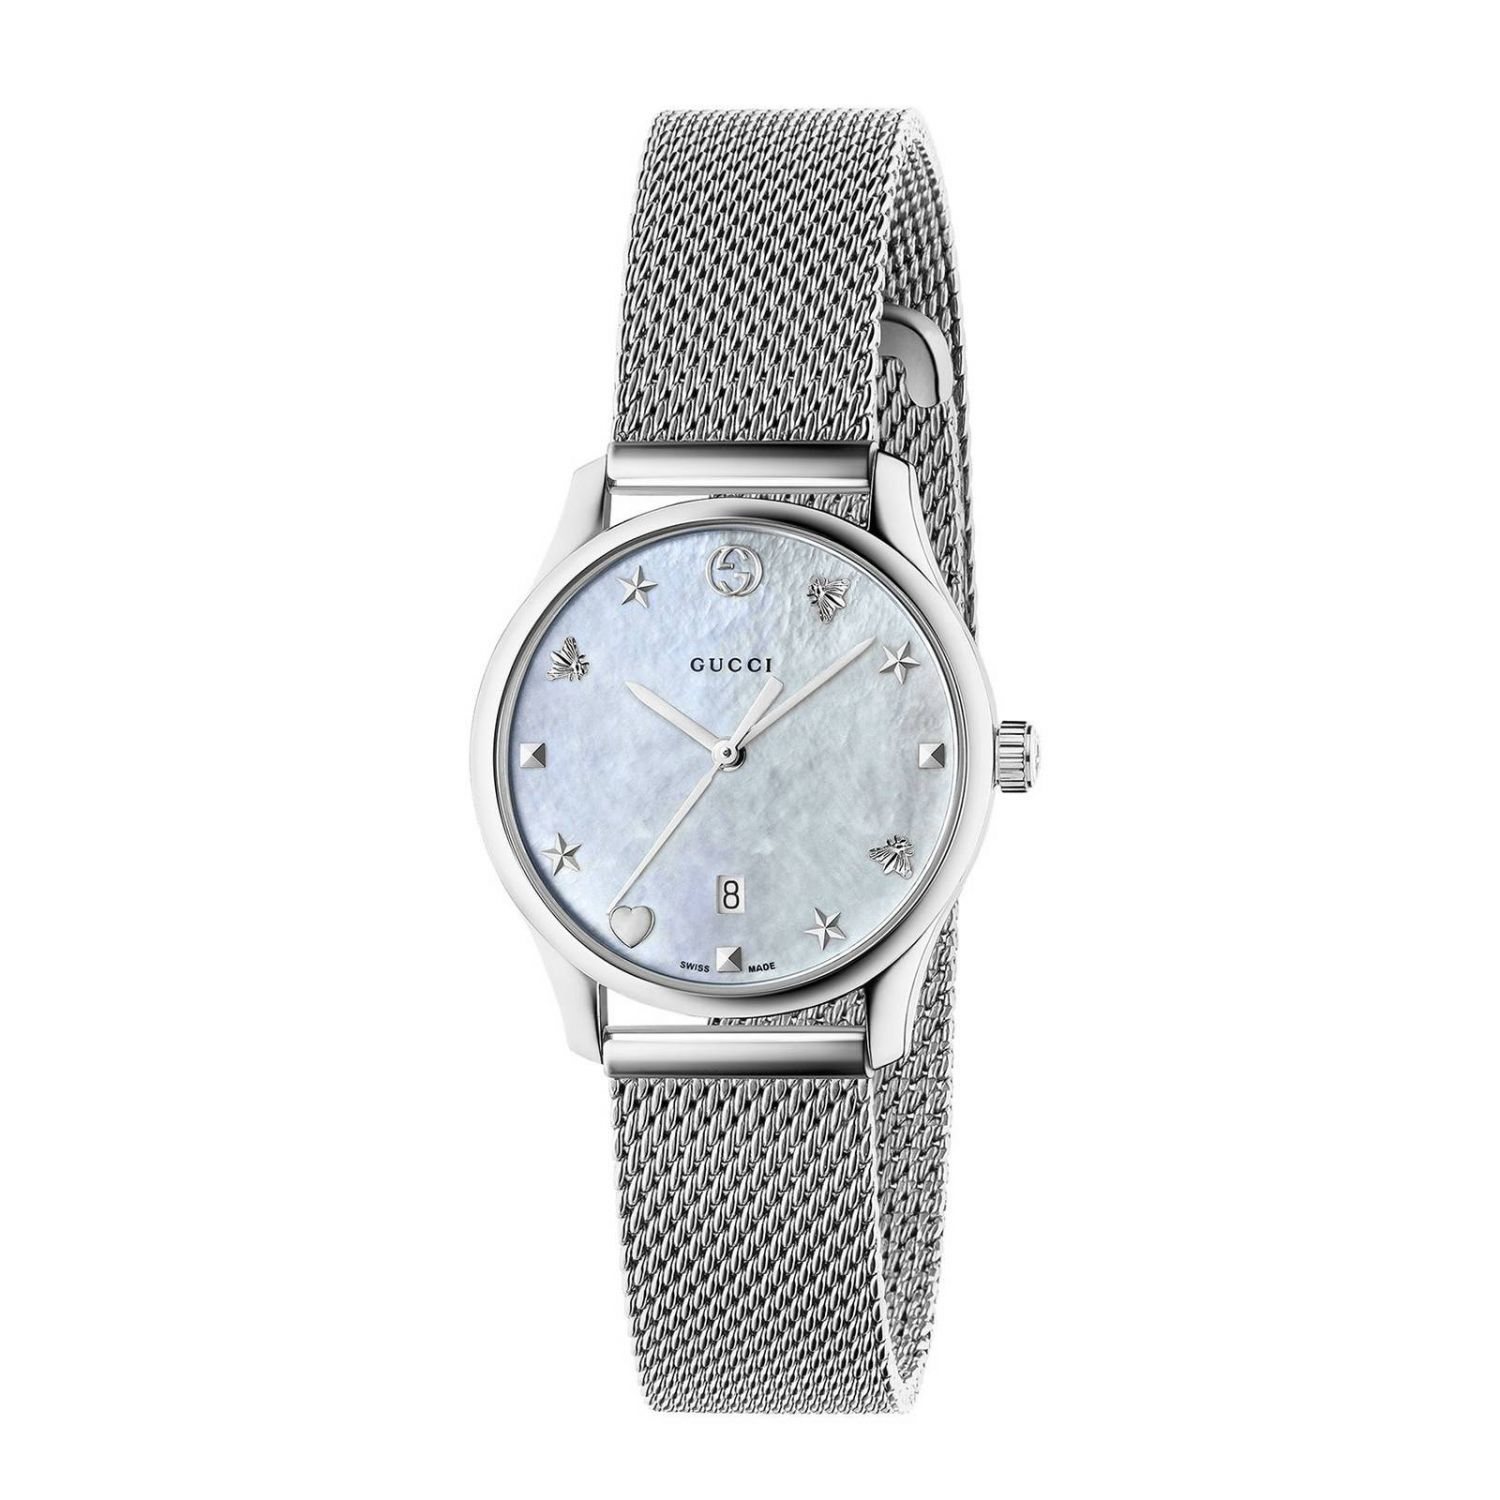 Watch G-Timeless Watch Case 27 Mm In Milanese Mesh With Mother-Of-Pearl Dial, Steel